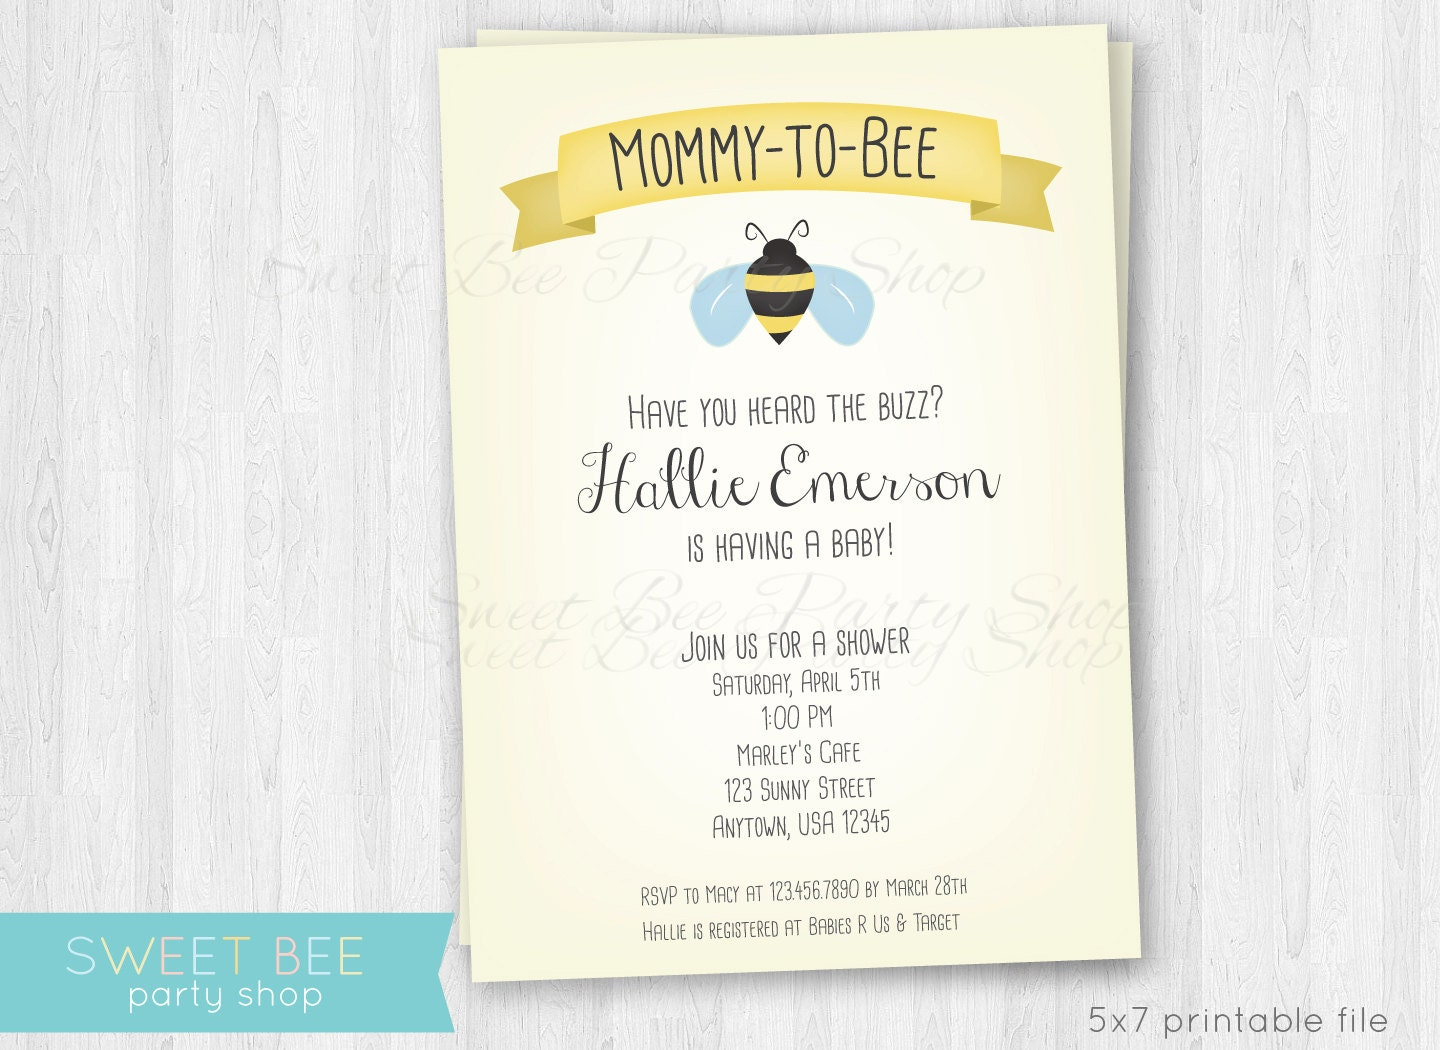 Mommy to Bee Baby Shower Invitation Printable File Bumble